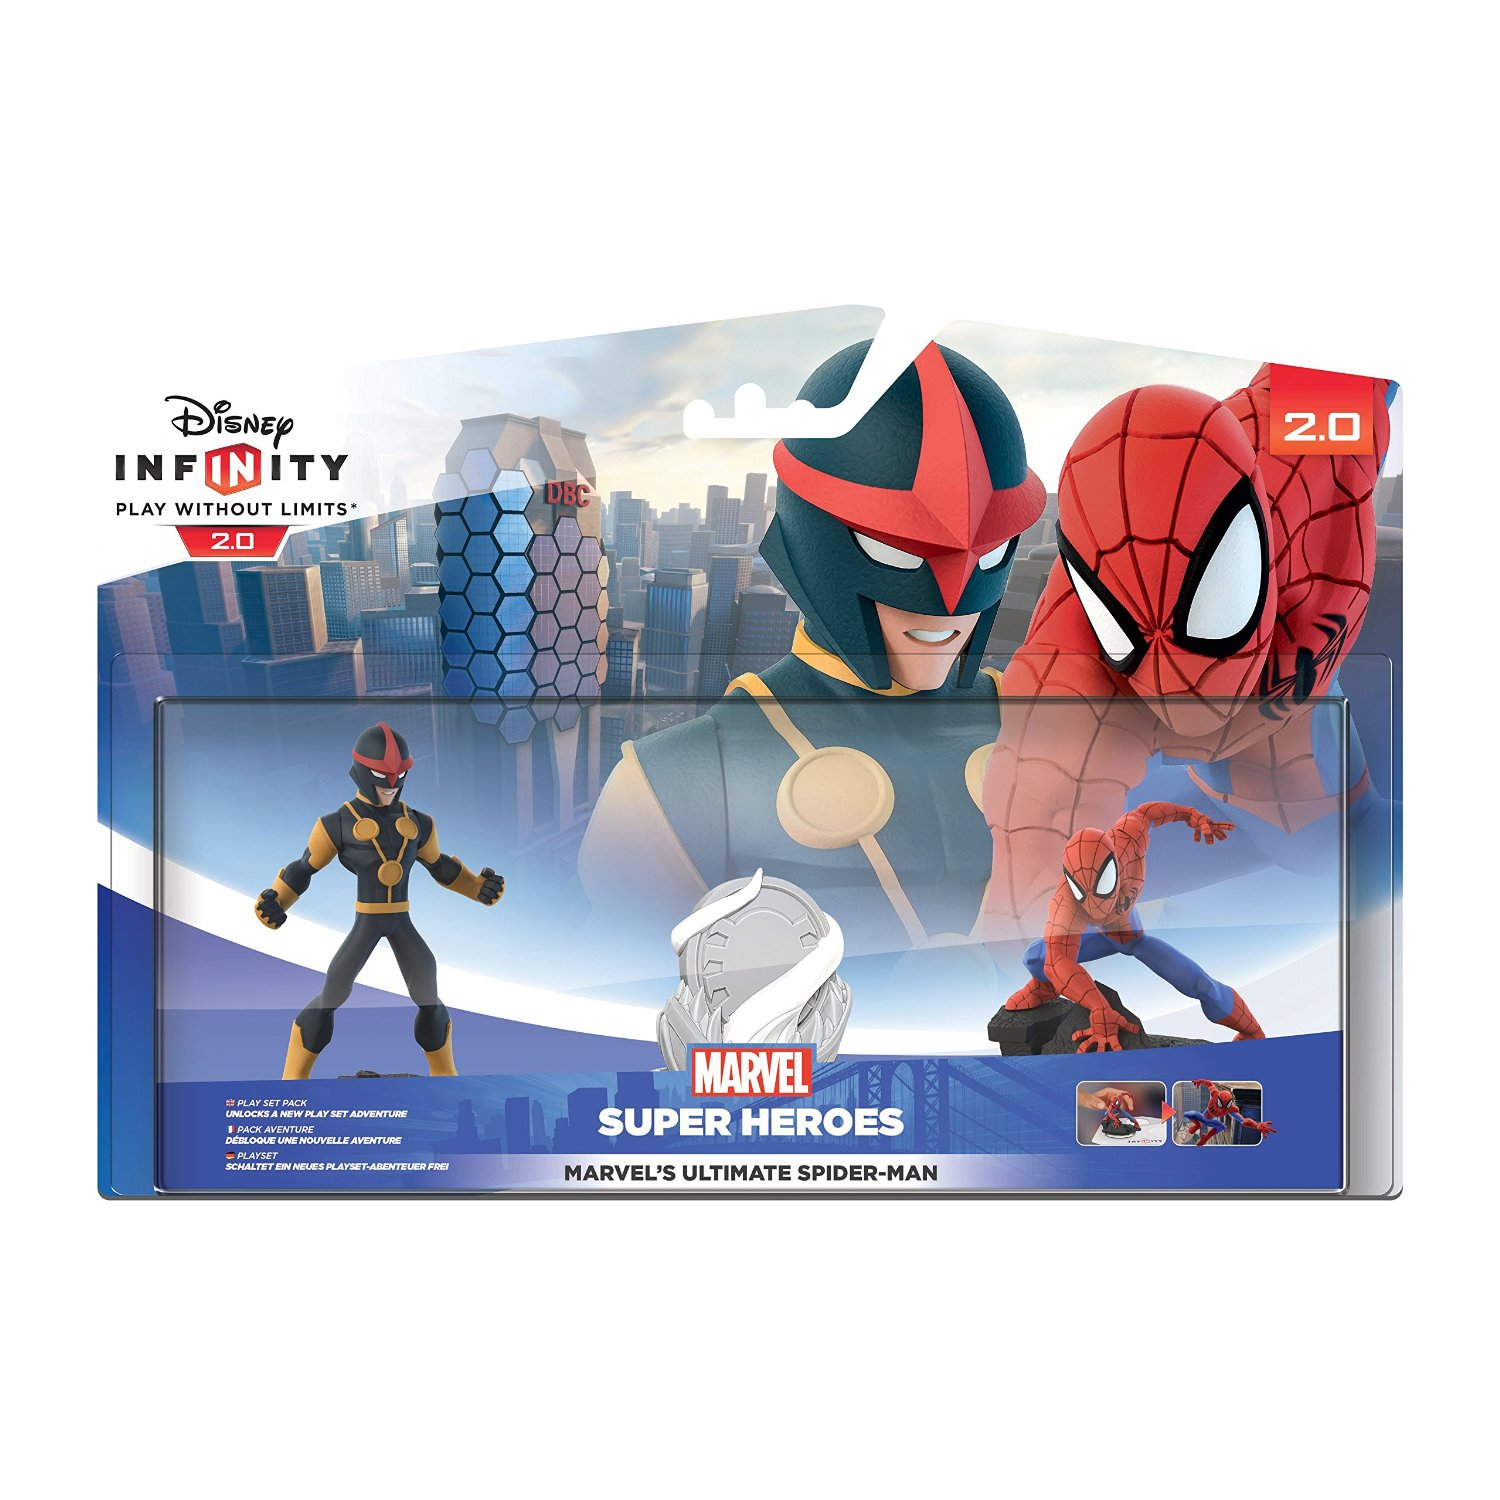 Disney Infinity 2.0 Spider-Man Playset Pack